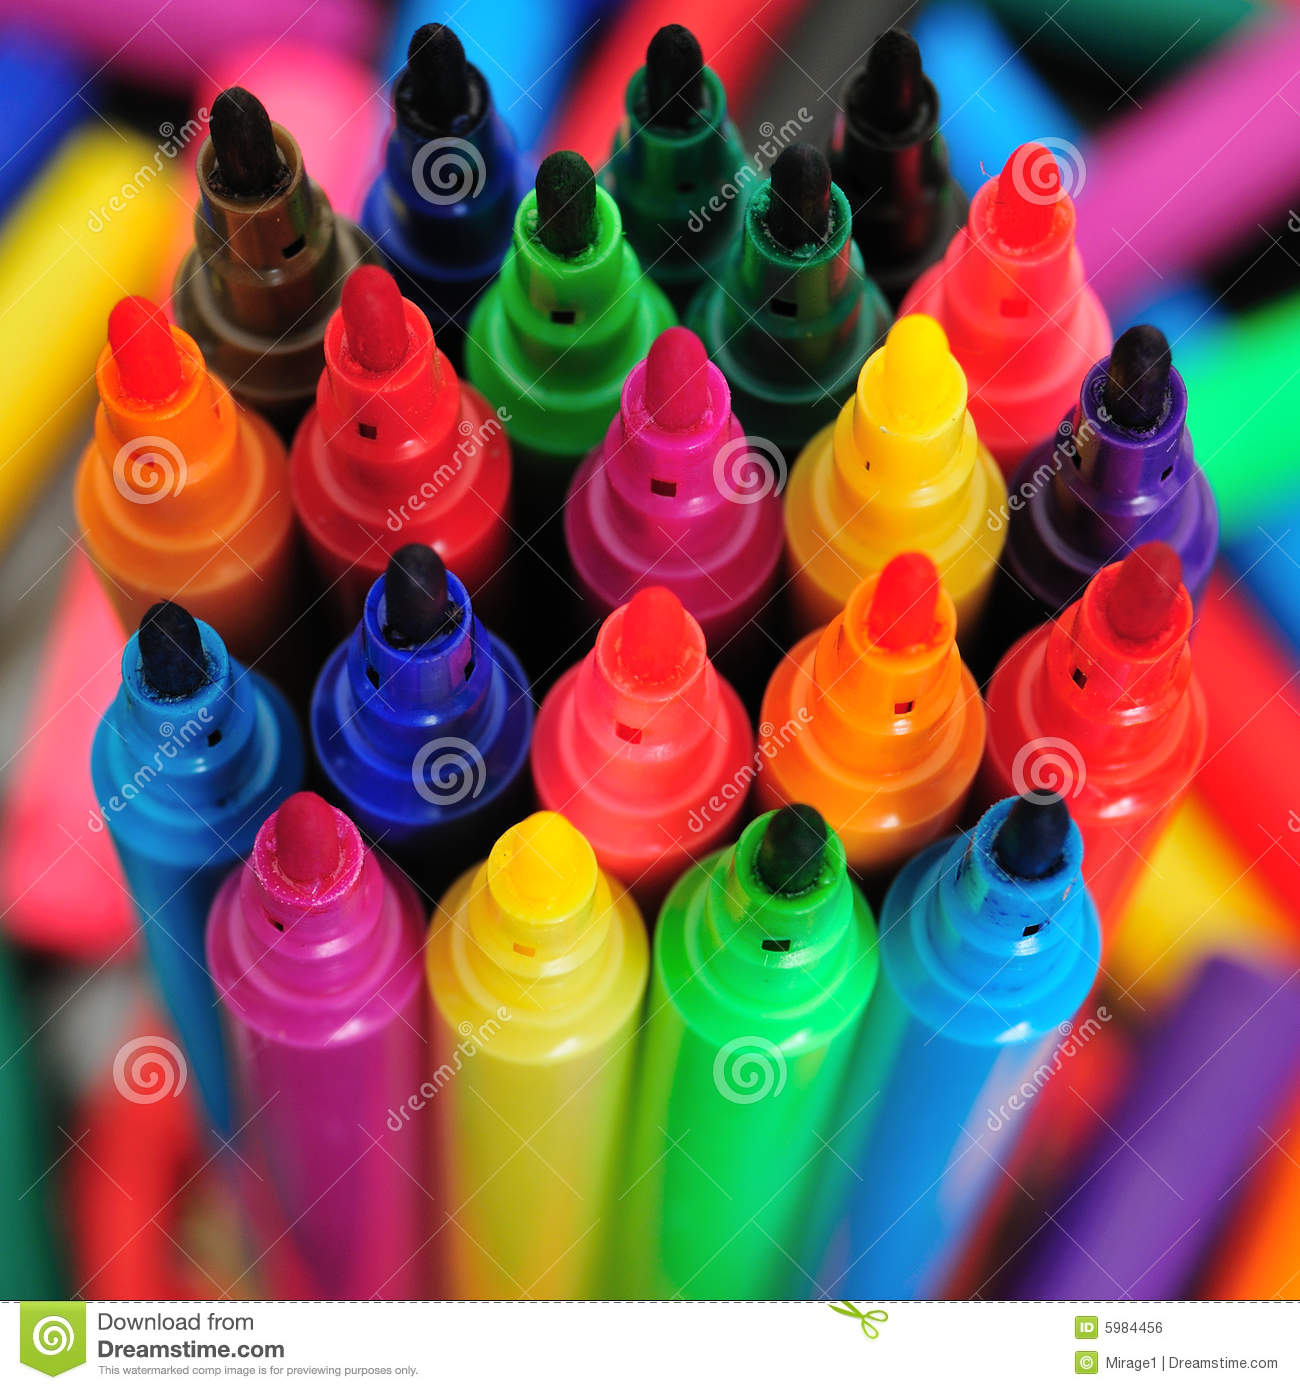 Rainbow marker pens stock photo  Image of closeup, mauve - 5984456